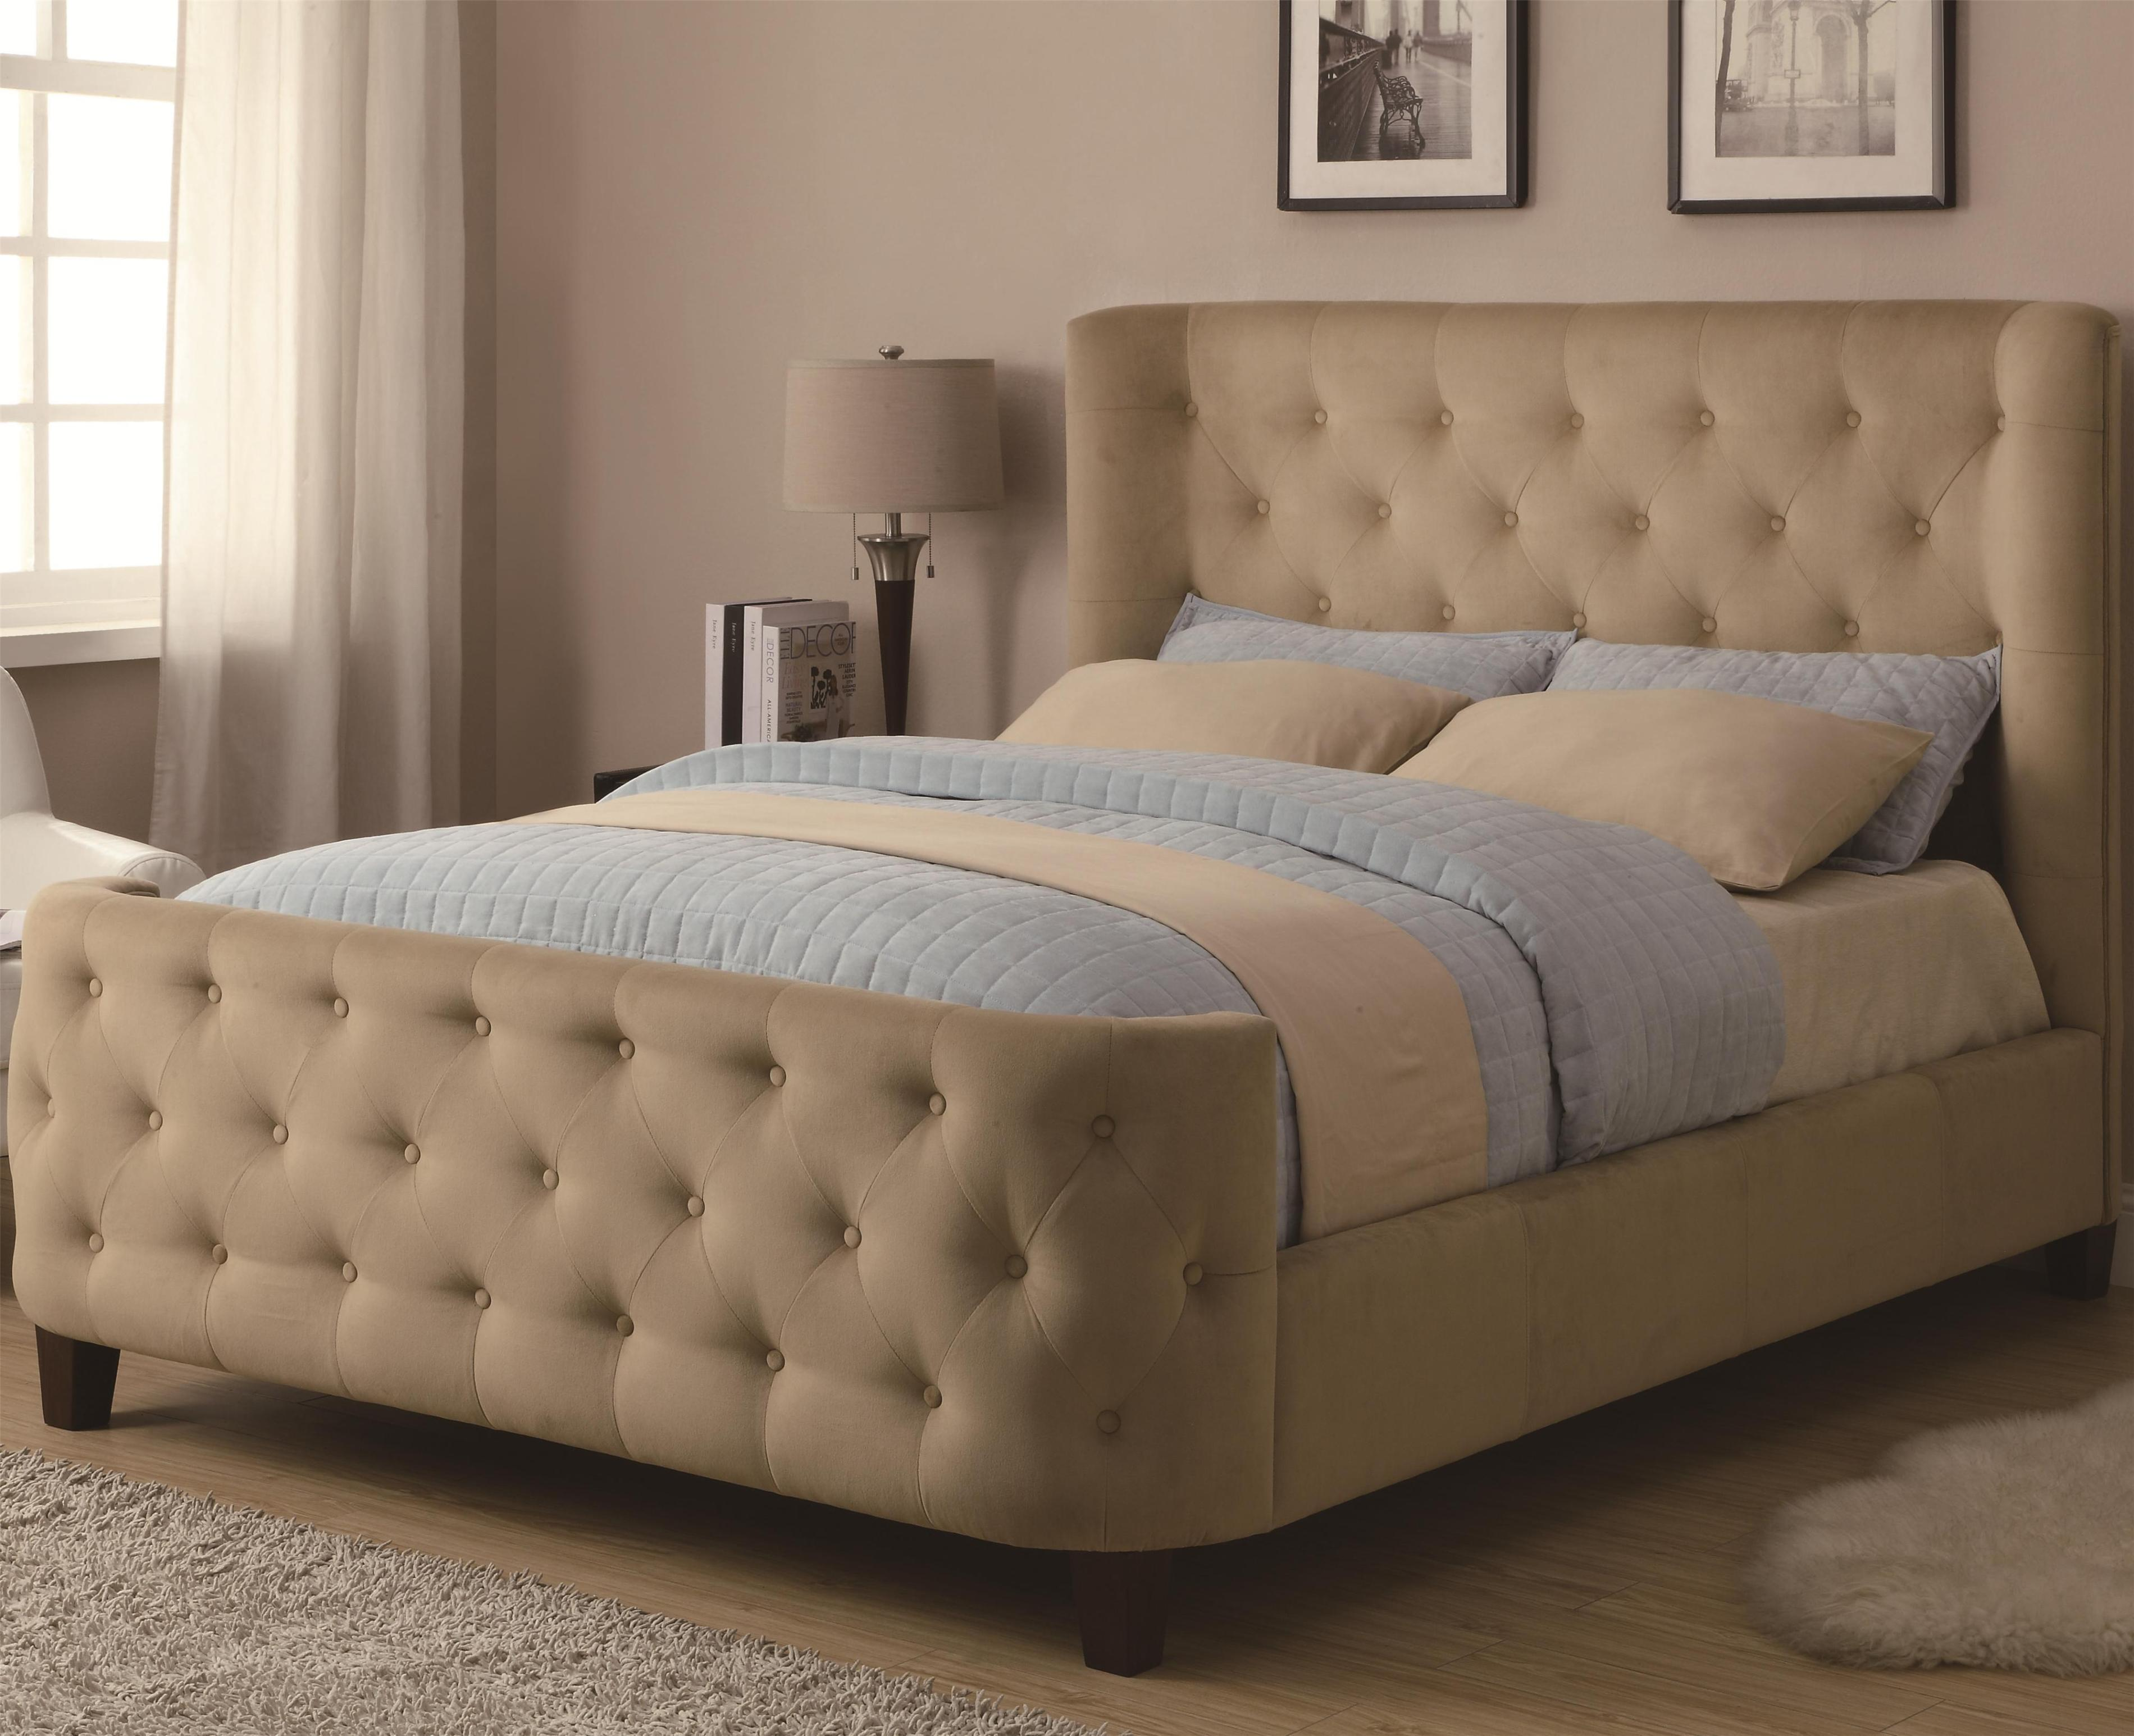 Image of: Tall Tufted Headboard Queen